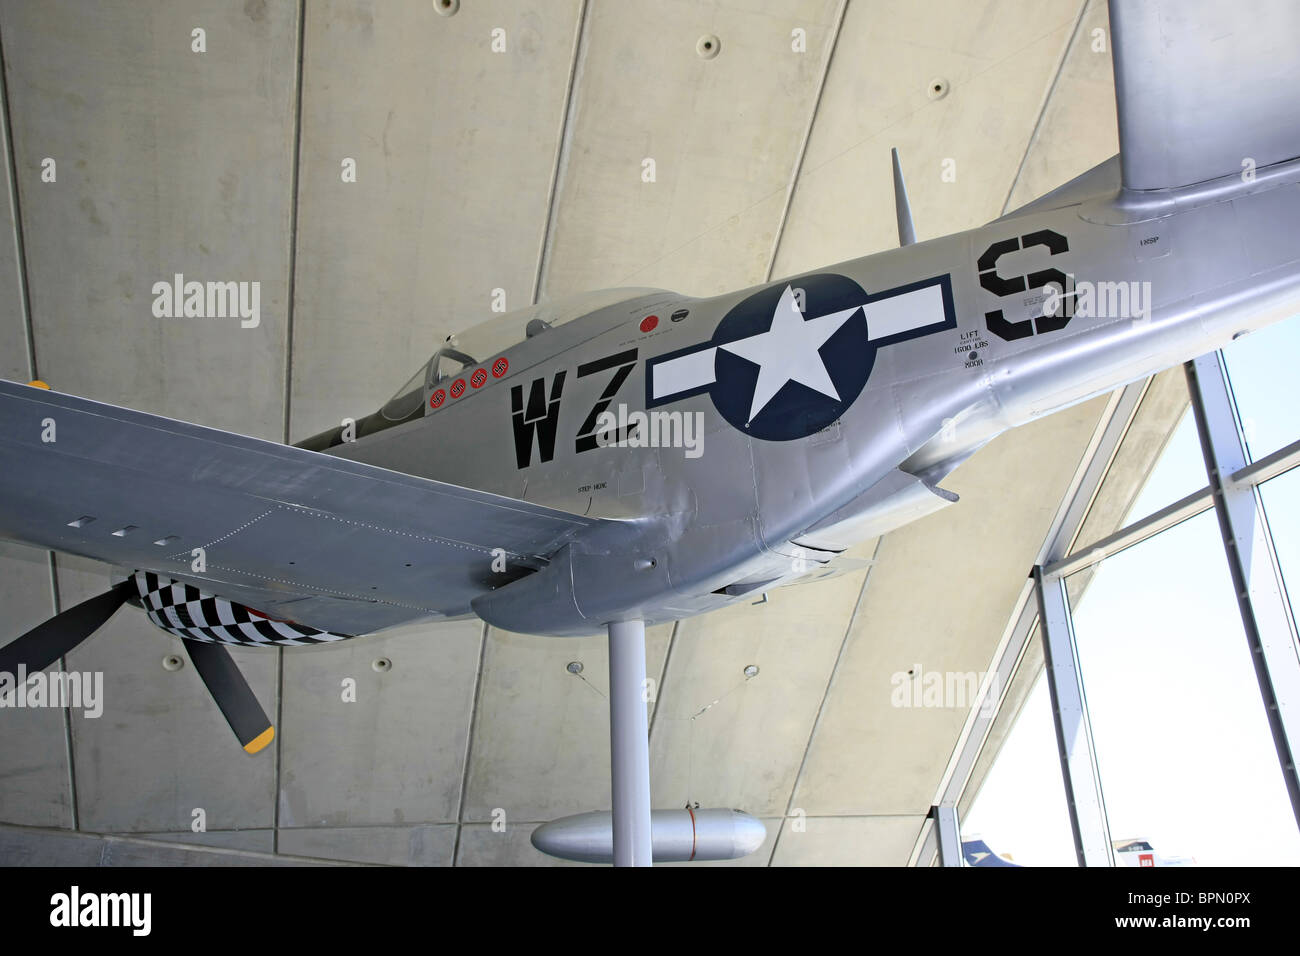 A P51 Mustang Fighter Plane On Display Hanging From The